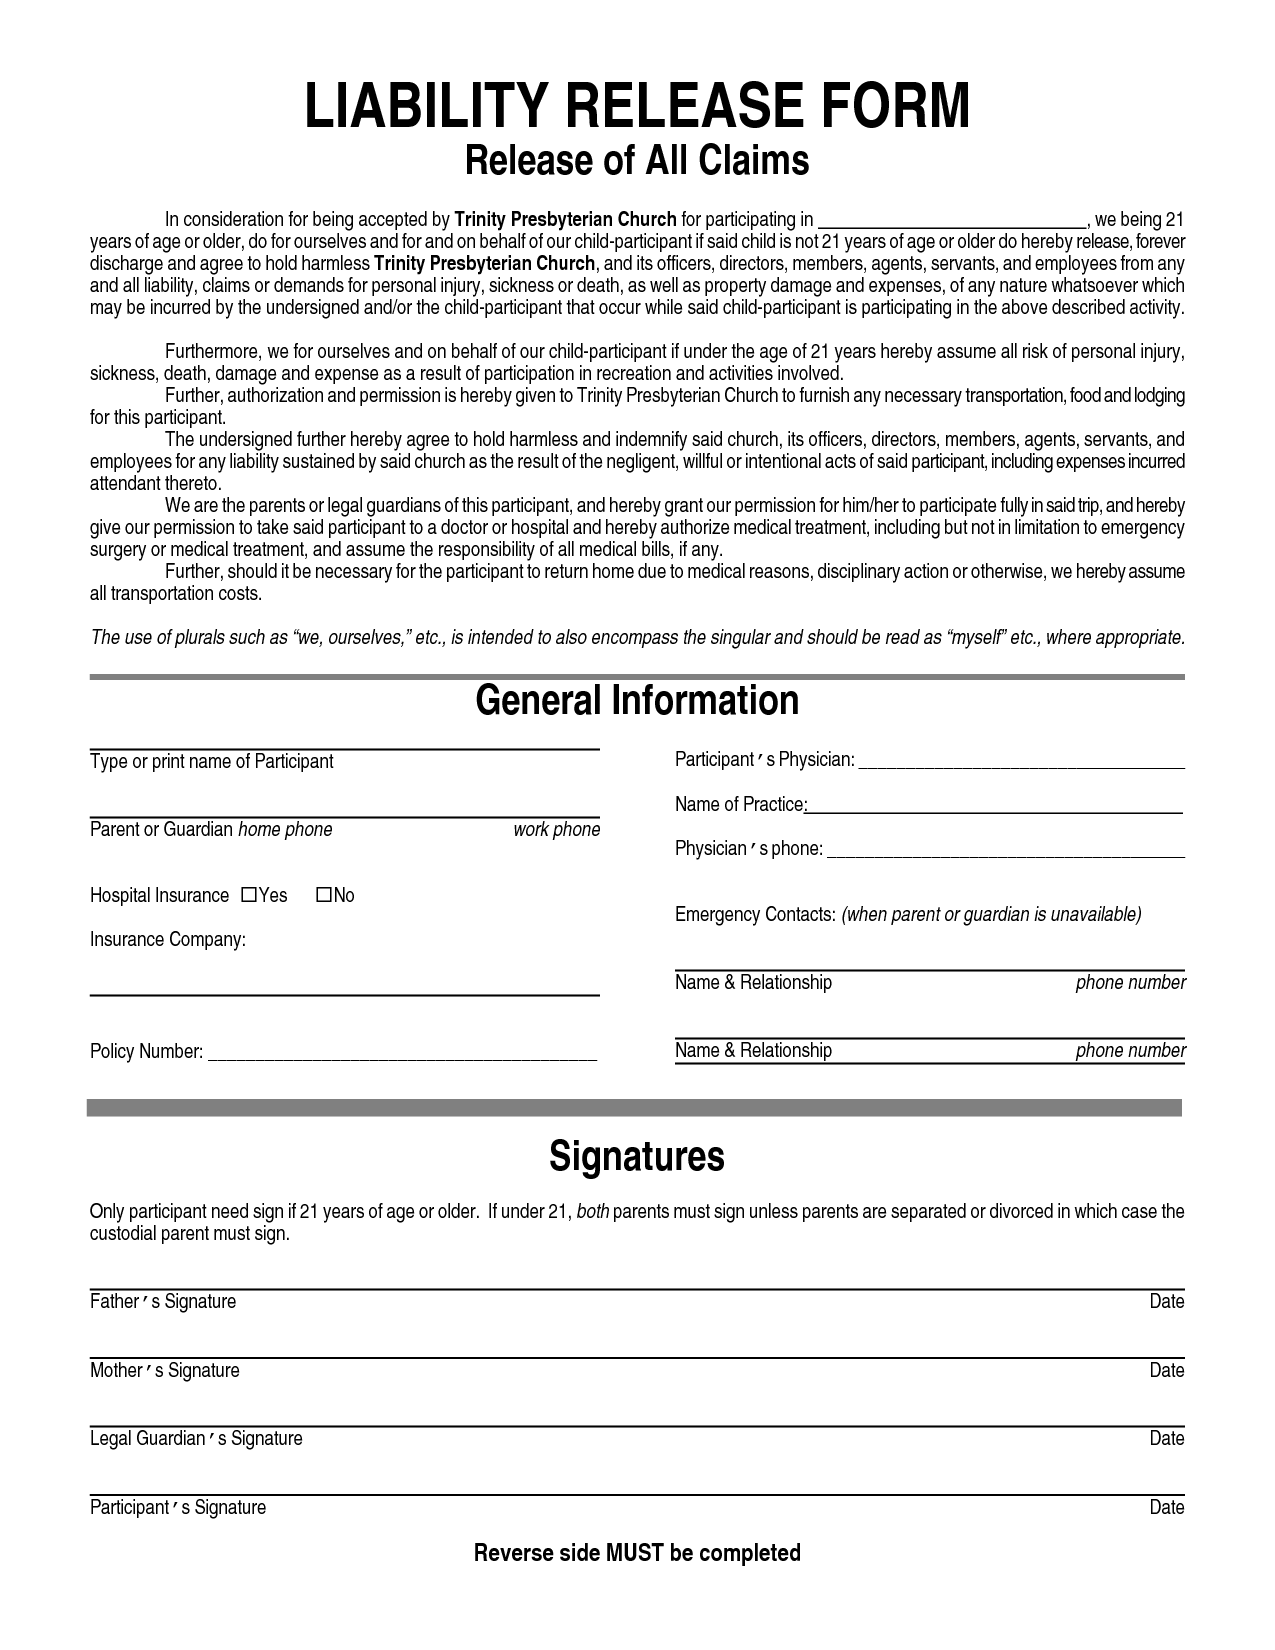 Interior Designer Furniture Delivery Liability Waiver ~ Free printable liability form generic